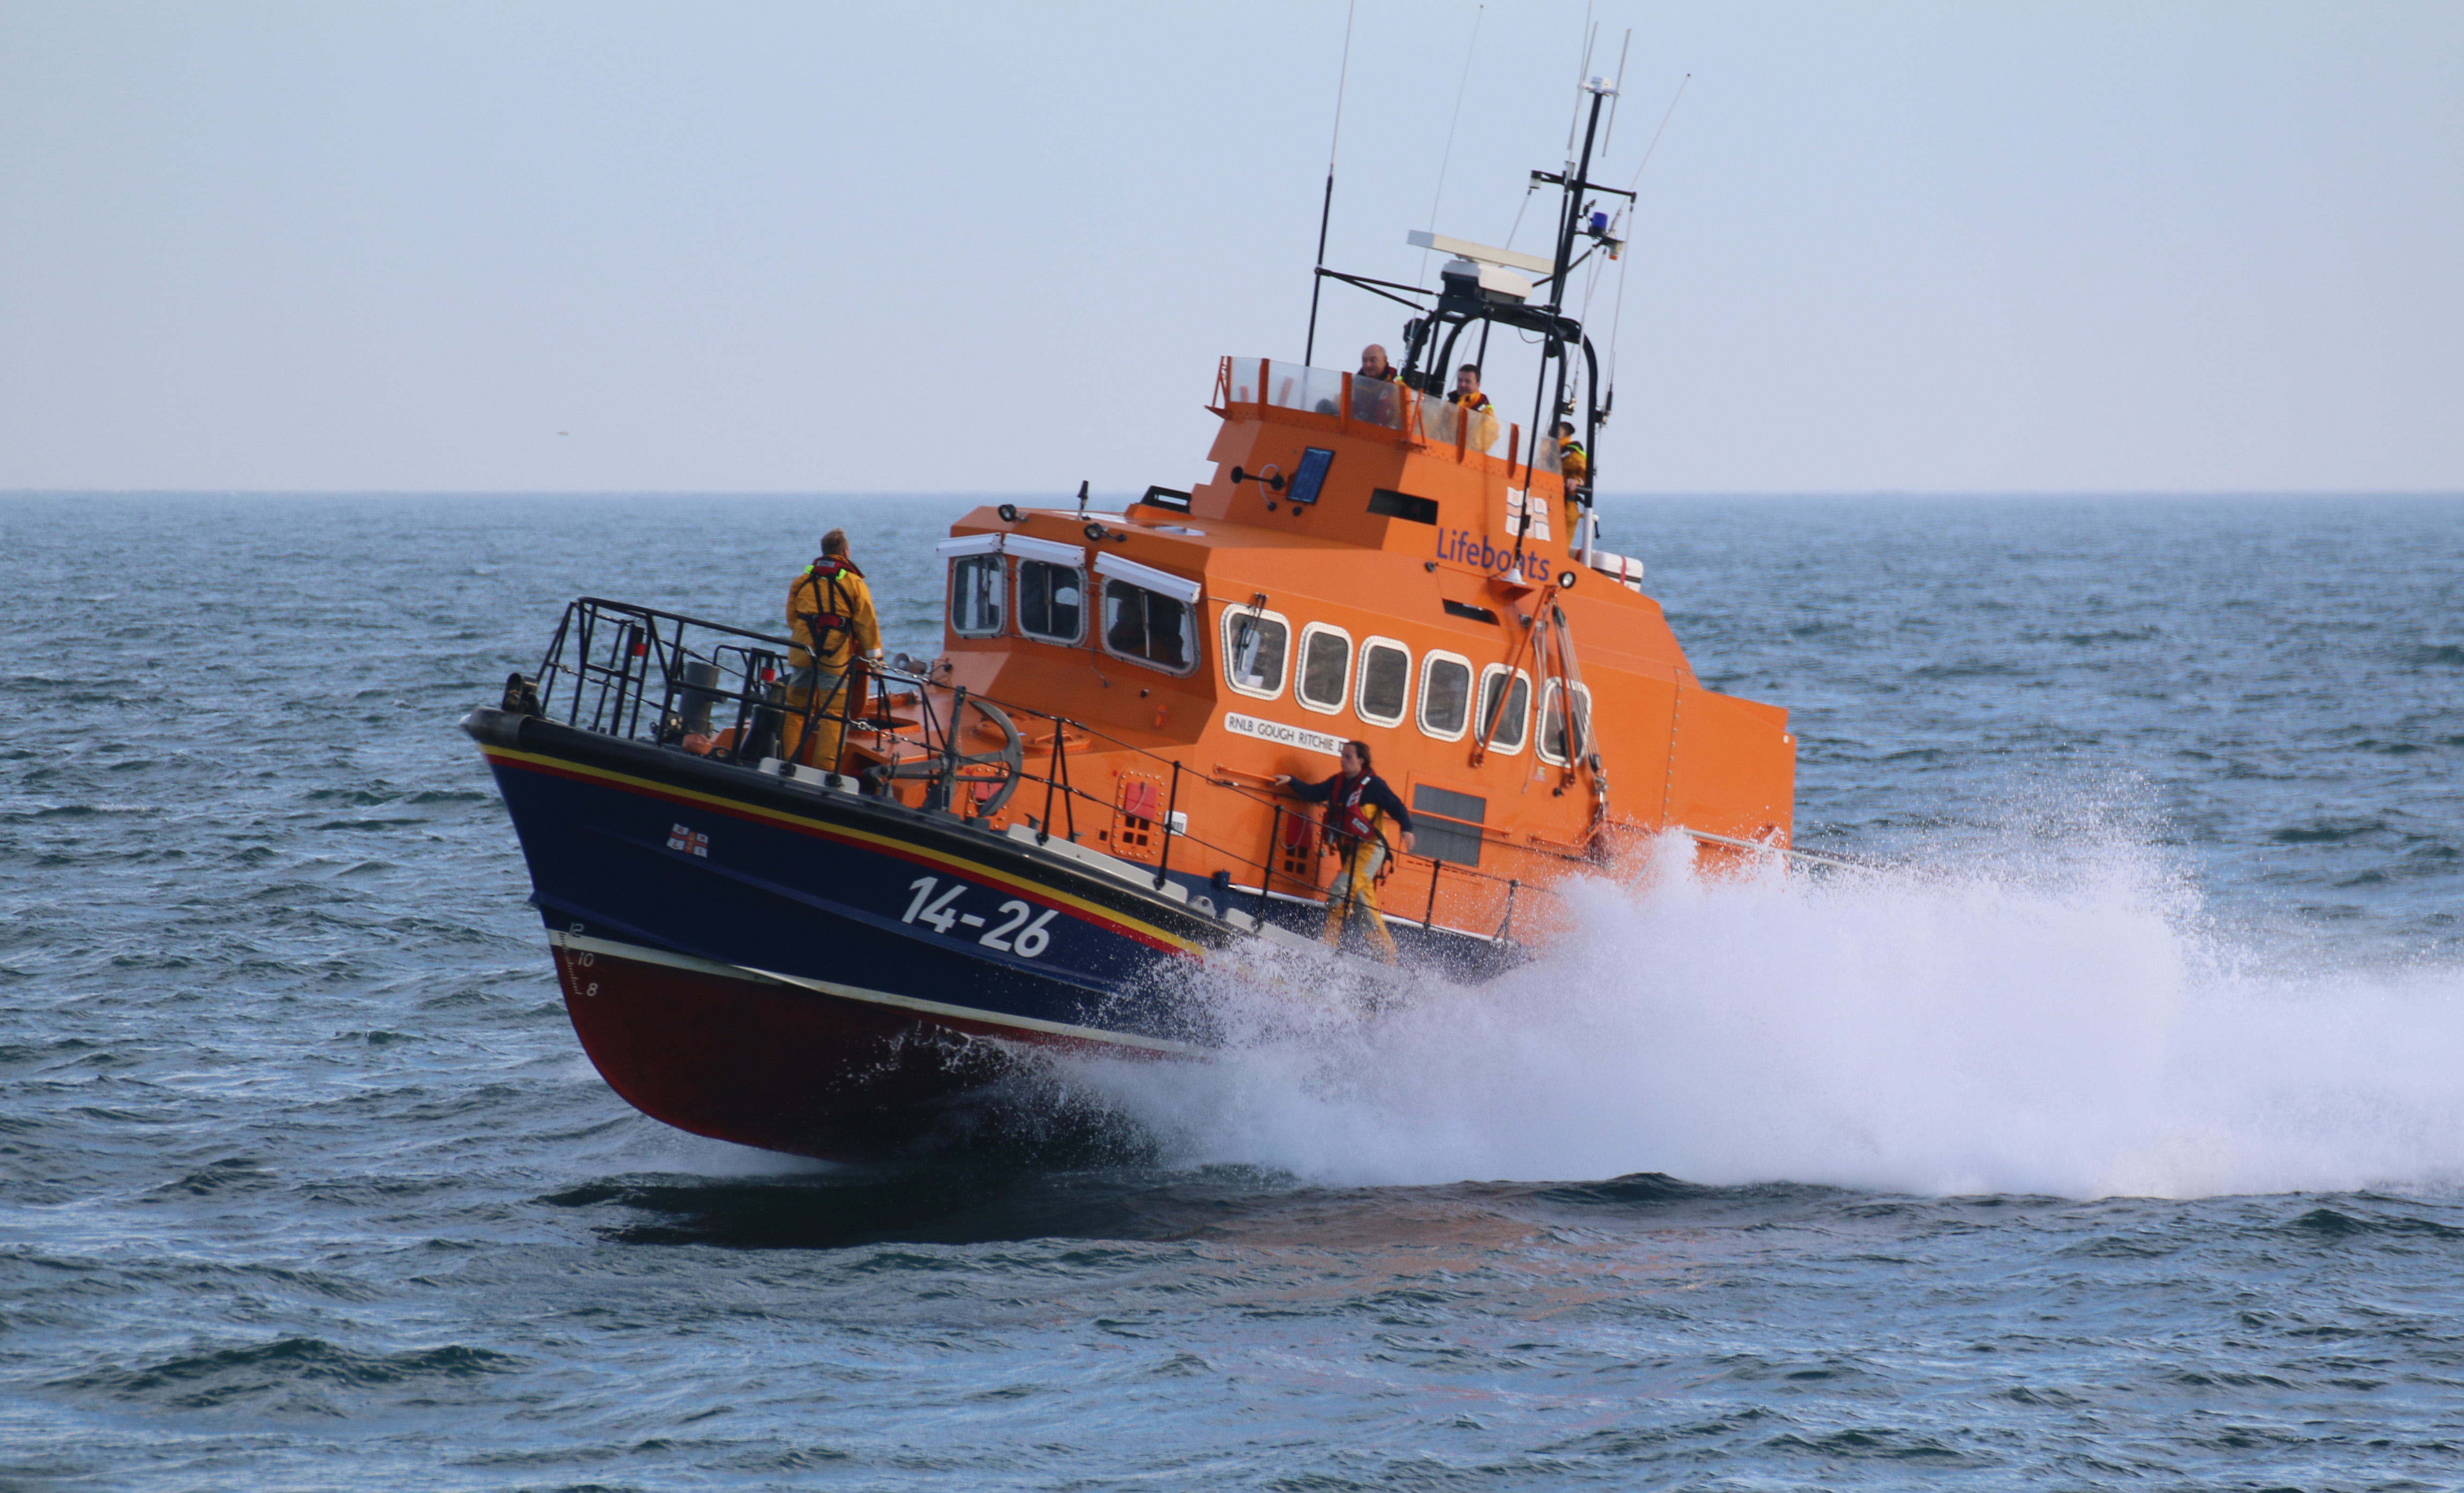 Port St Mary RNLI's all-weather Trent class lifeboat